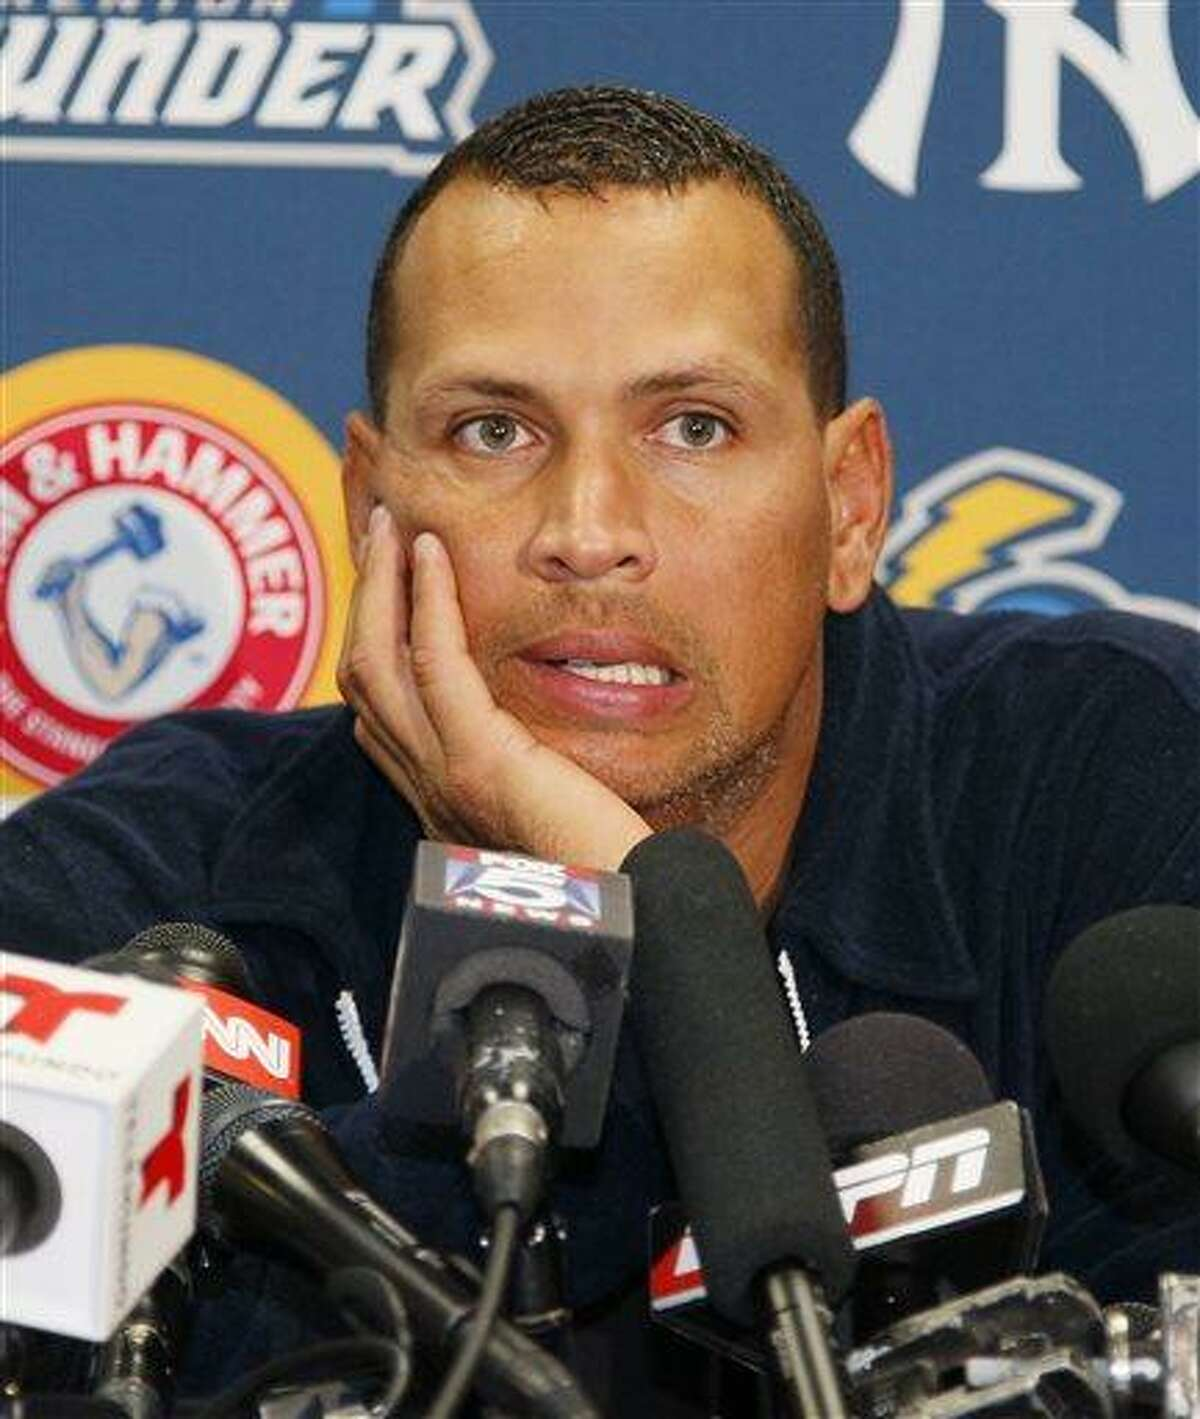 FILE - In this Aug. 2, 2013, file photo, New York Yankees' Alex Rodriguez answers questions from reporters during a news conference following a Class AA baseball game with the Trenton Thunder against the Reading Phillies, in Trenton, N.J. Three MVP awards, 14 All-Star selections, two record-setting contracts and countless controversies later, A-Rod is the biggest and wealthiest target of an investigation into performance-enhancing drugs, with a decision from baseball Commissioner Bud Selig expected on Monday, Aug. 5, 2013. (AP Photo/Tom Mihalek, File)